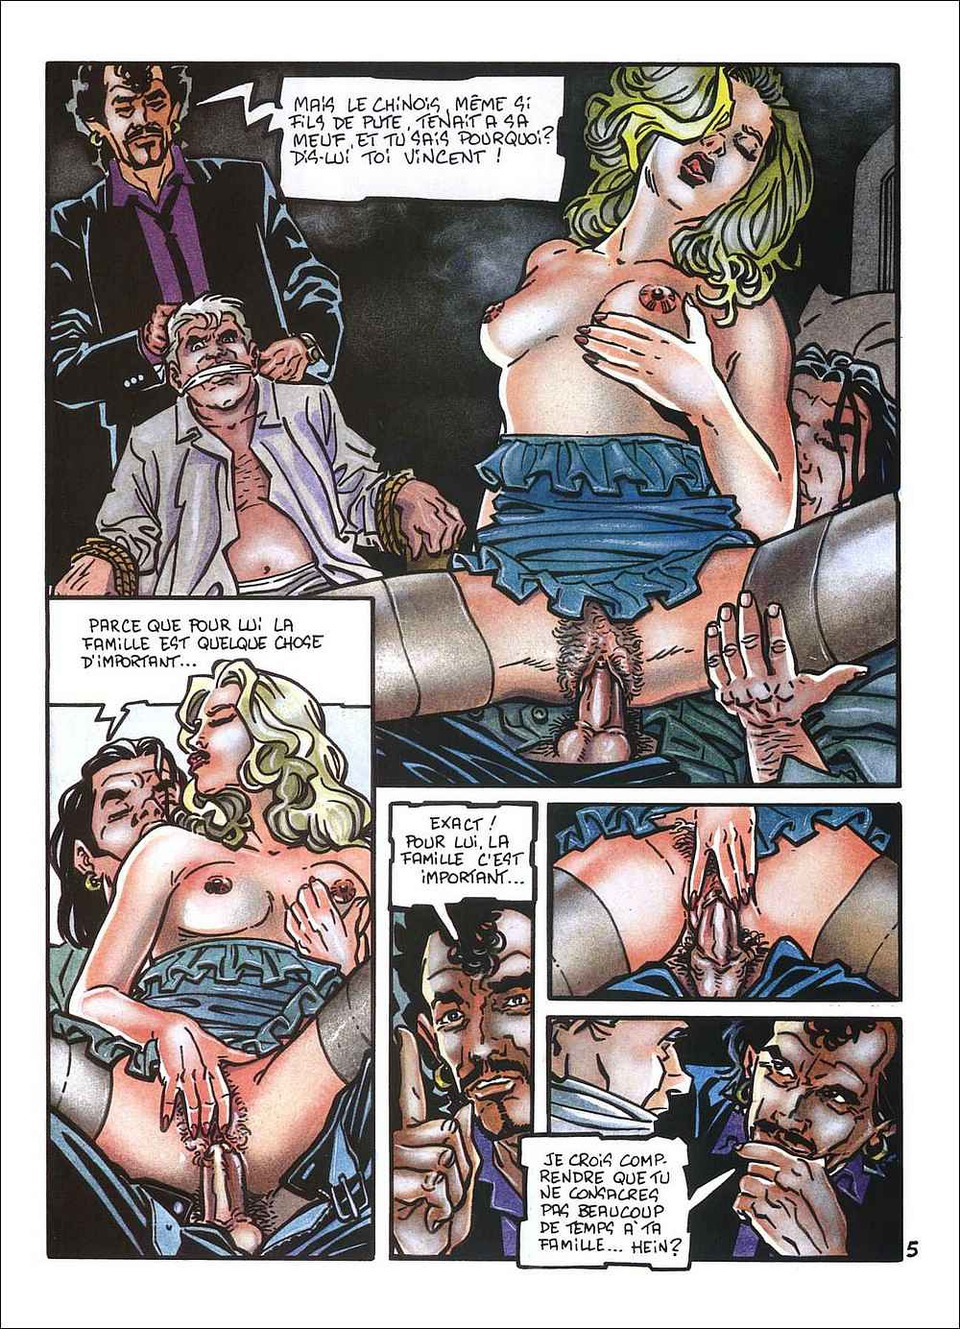 More modest adult comic erotic free strip